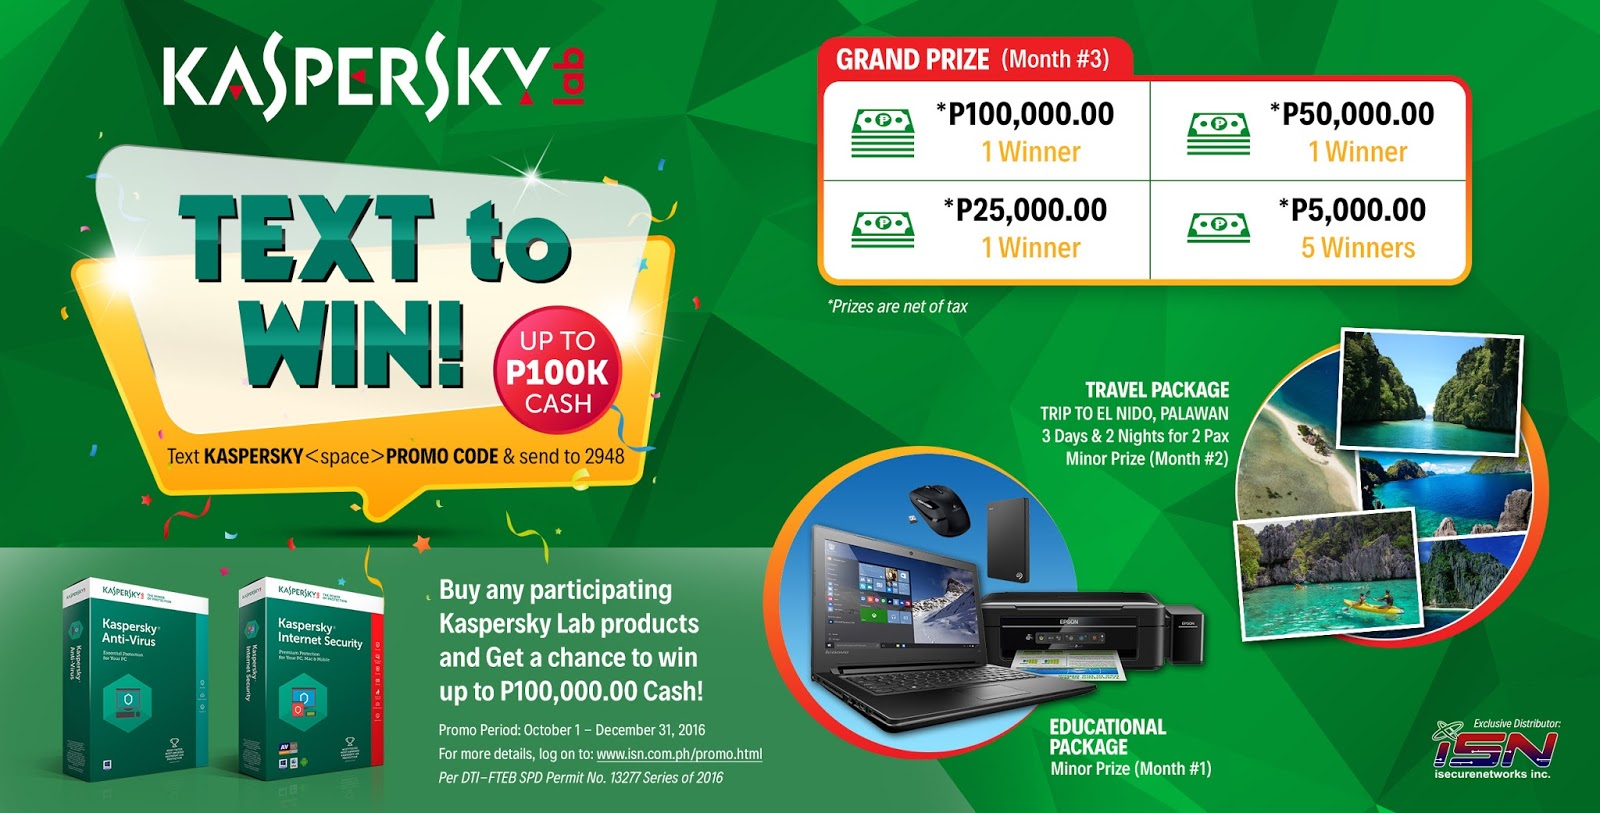 Kaspersky Text to Win Promo